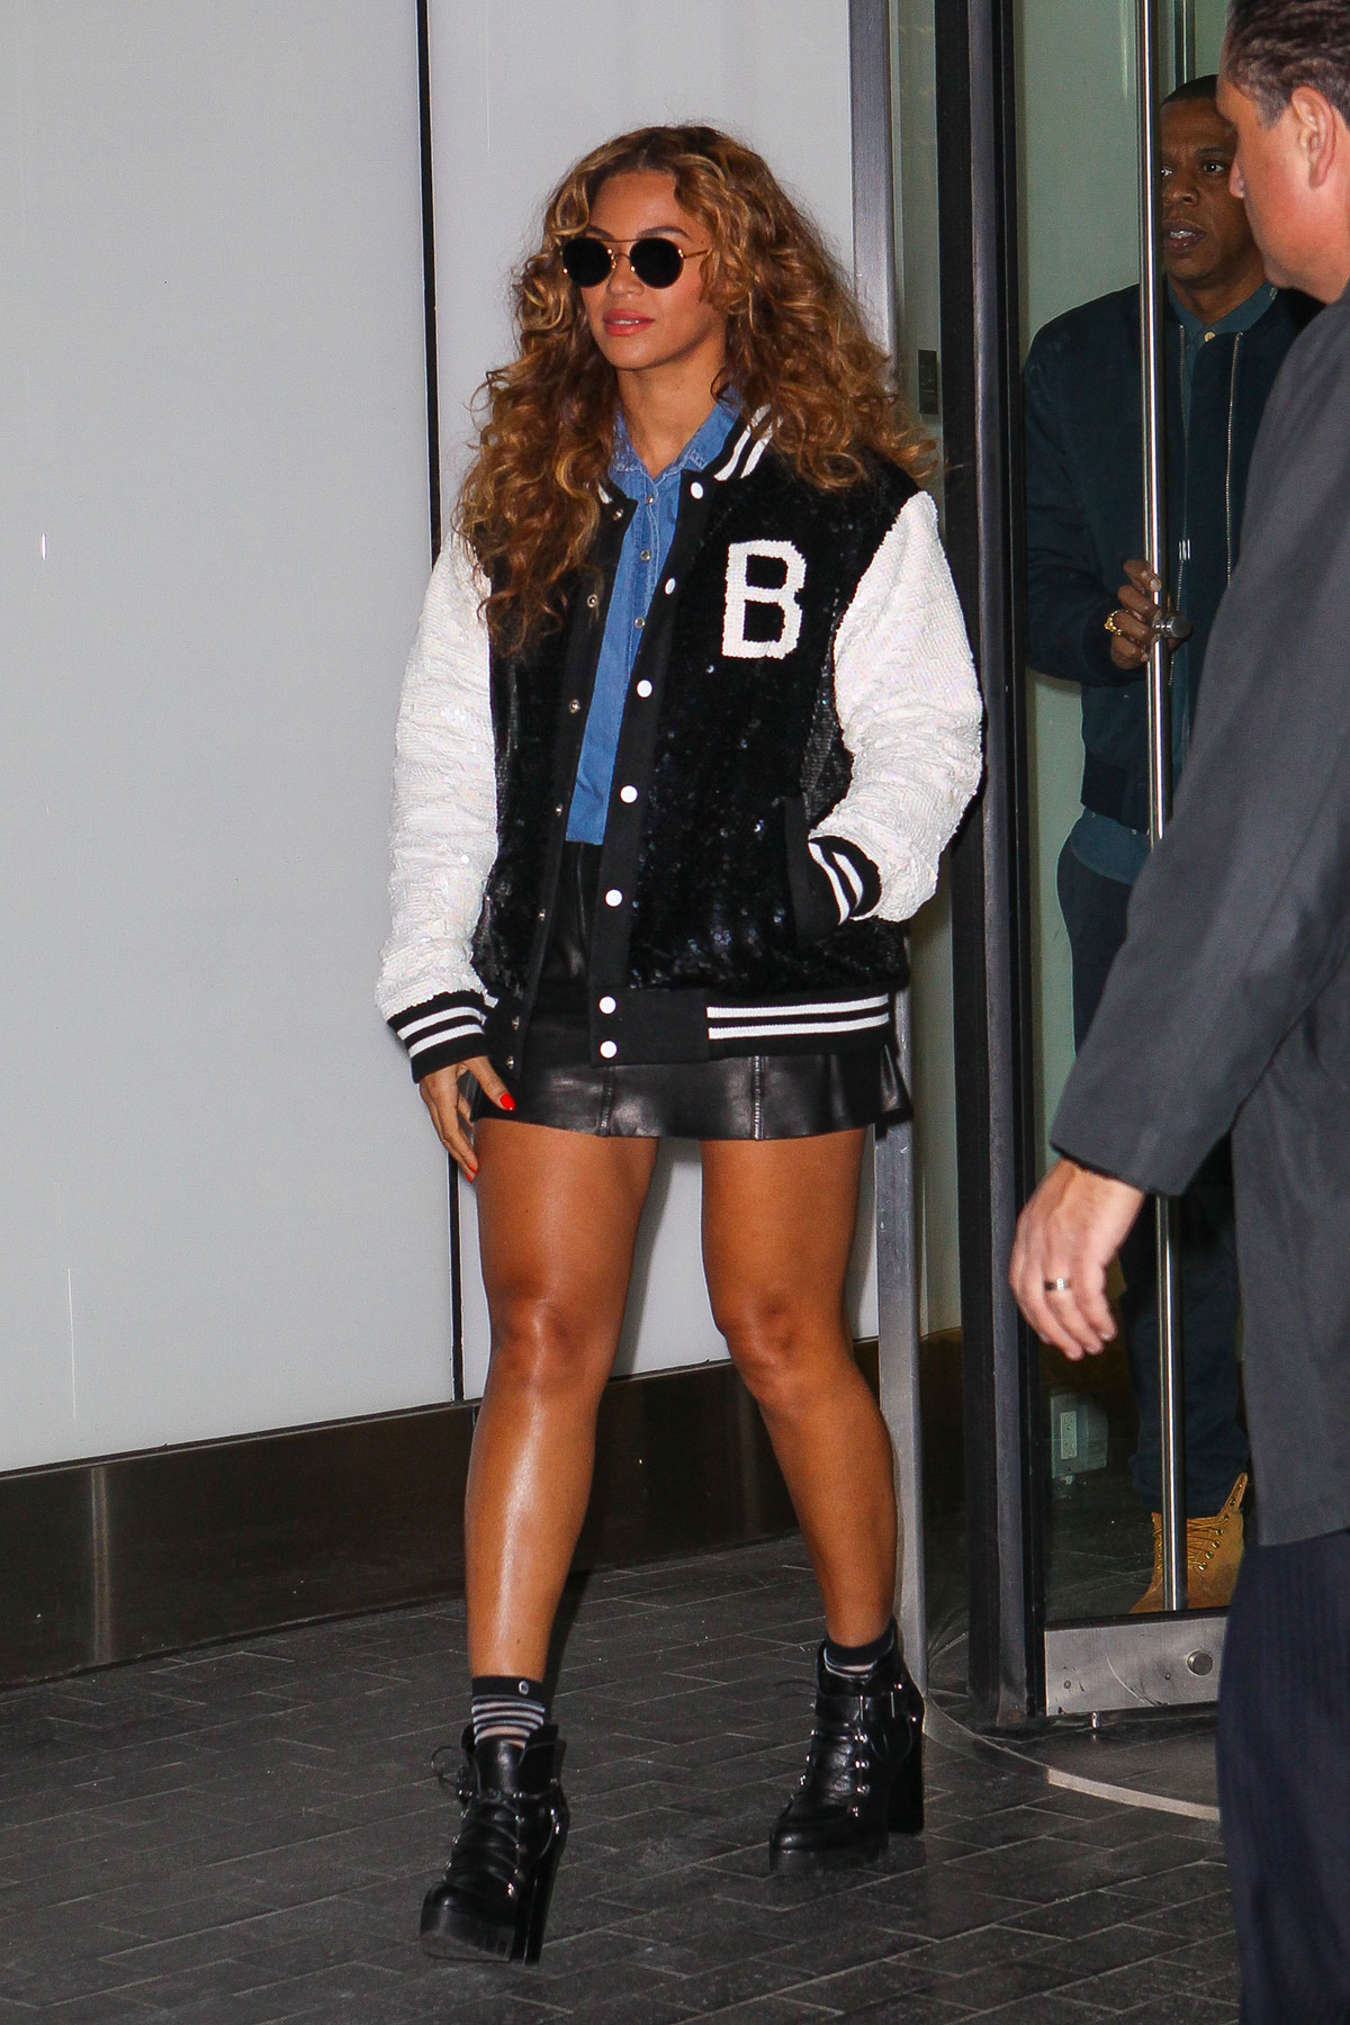 beyonce and z leaving their office in new york